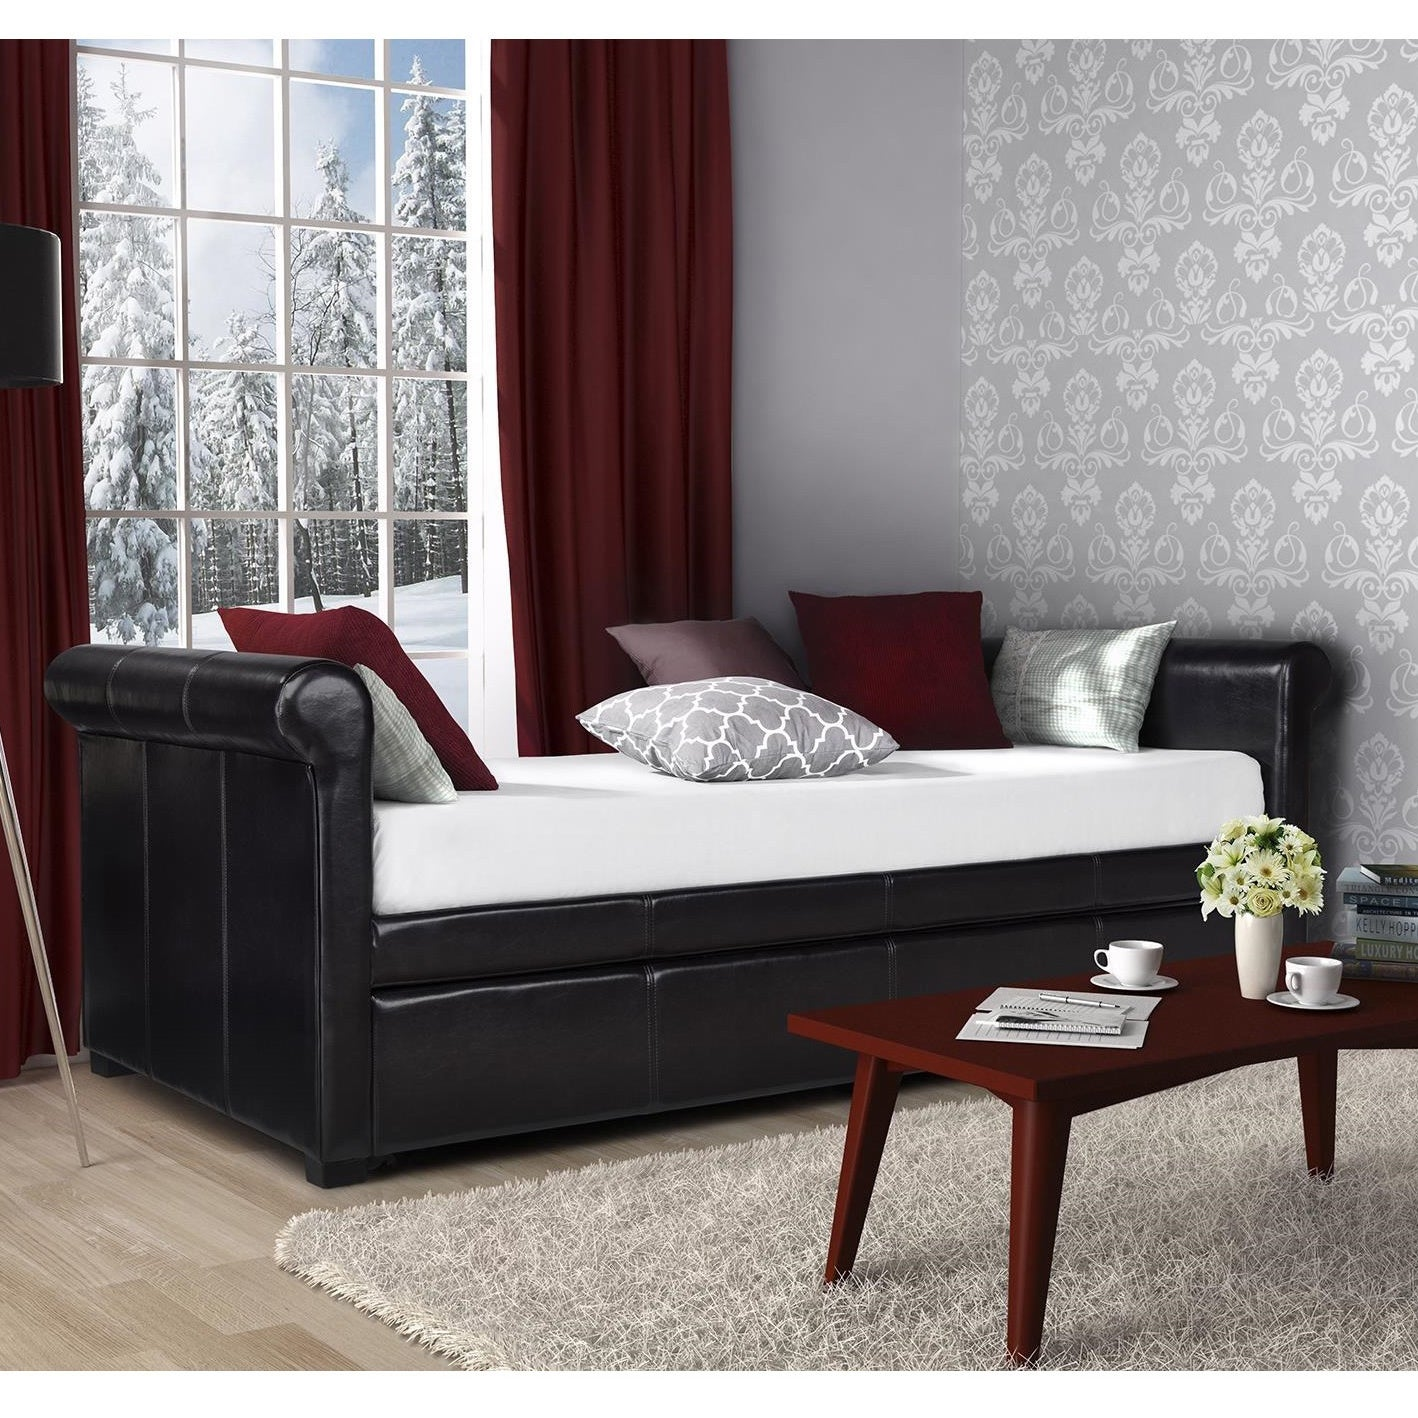 DHP Giada Upholstered Trundle/ Daybed (Daybed and trundle...